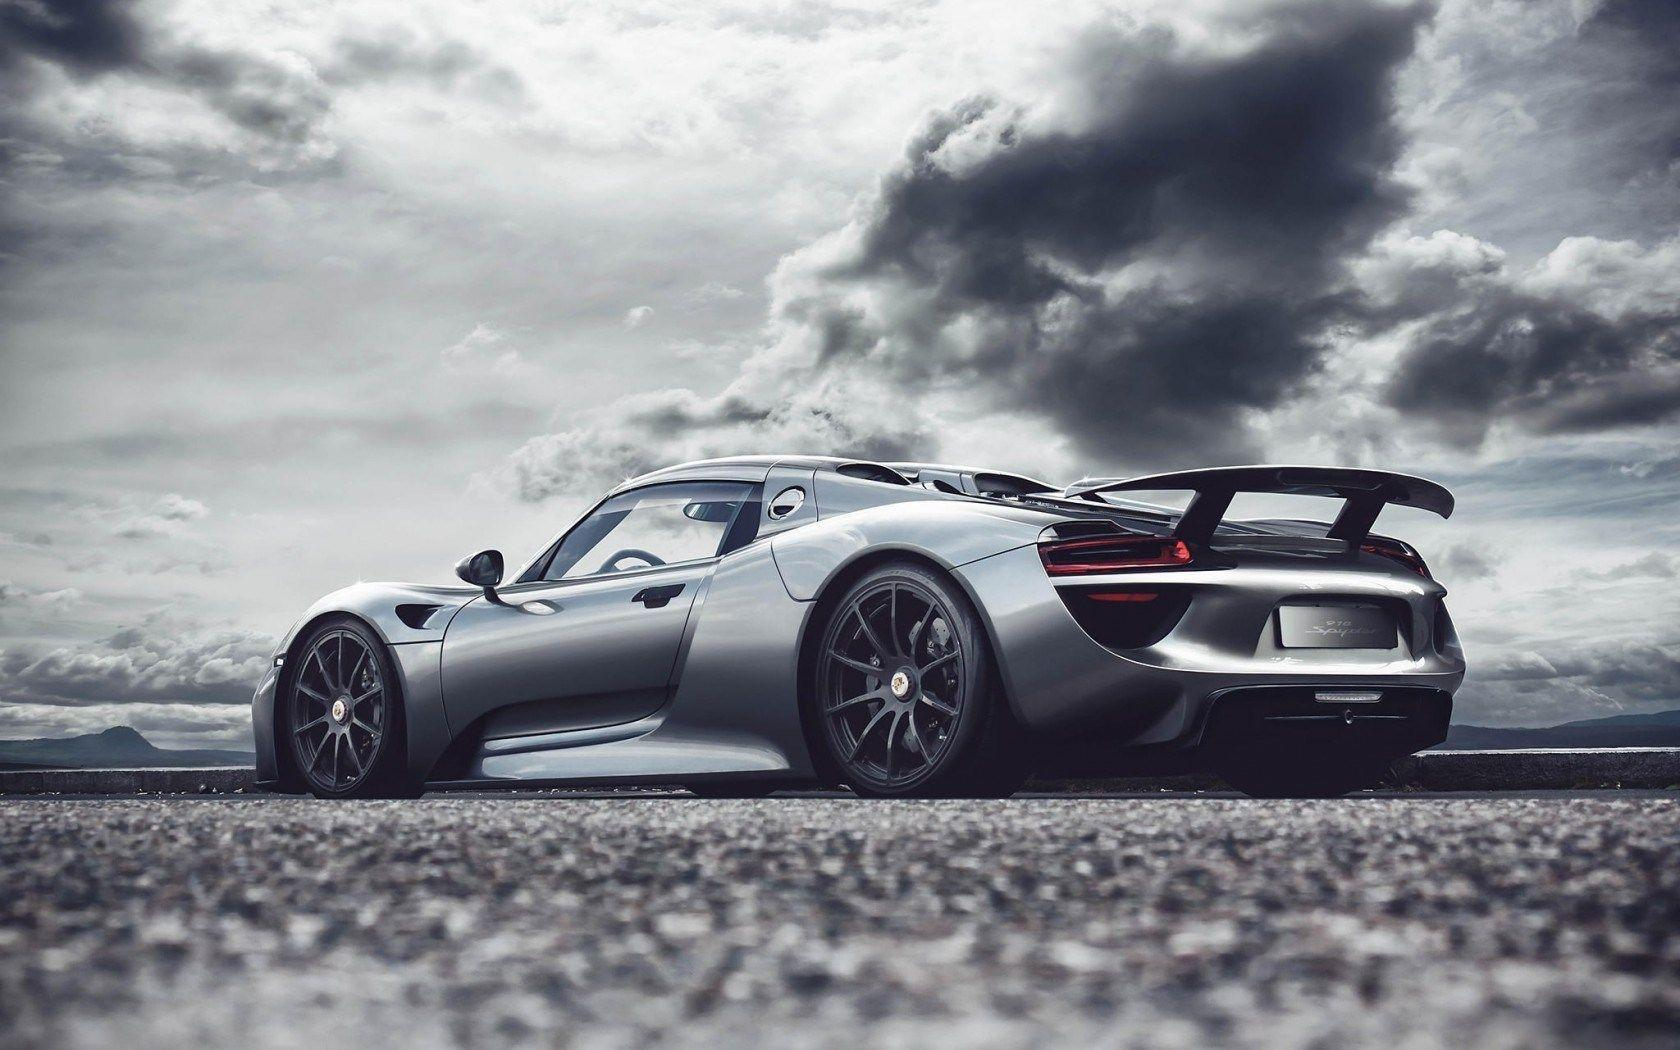 15 excellent hd porsche wallpapers hdwallsourcecom hdwallsource - Porsche 918 Spyder Wallpaper